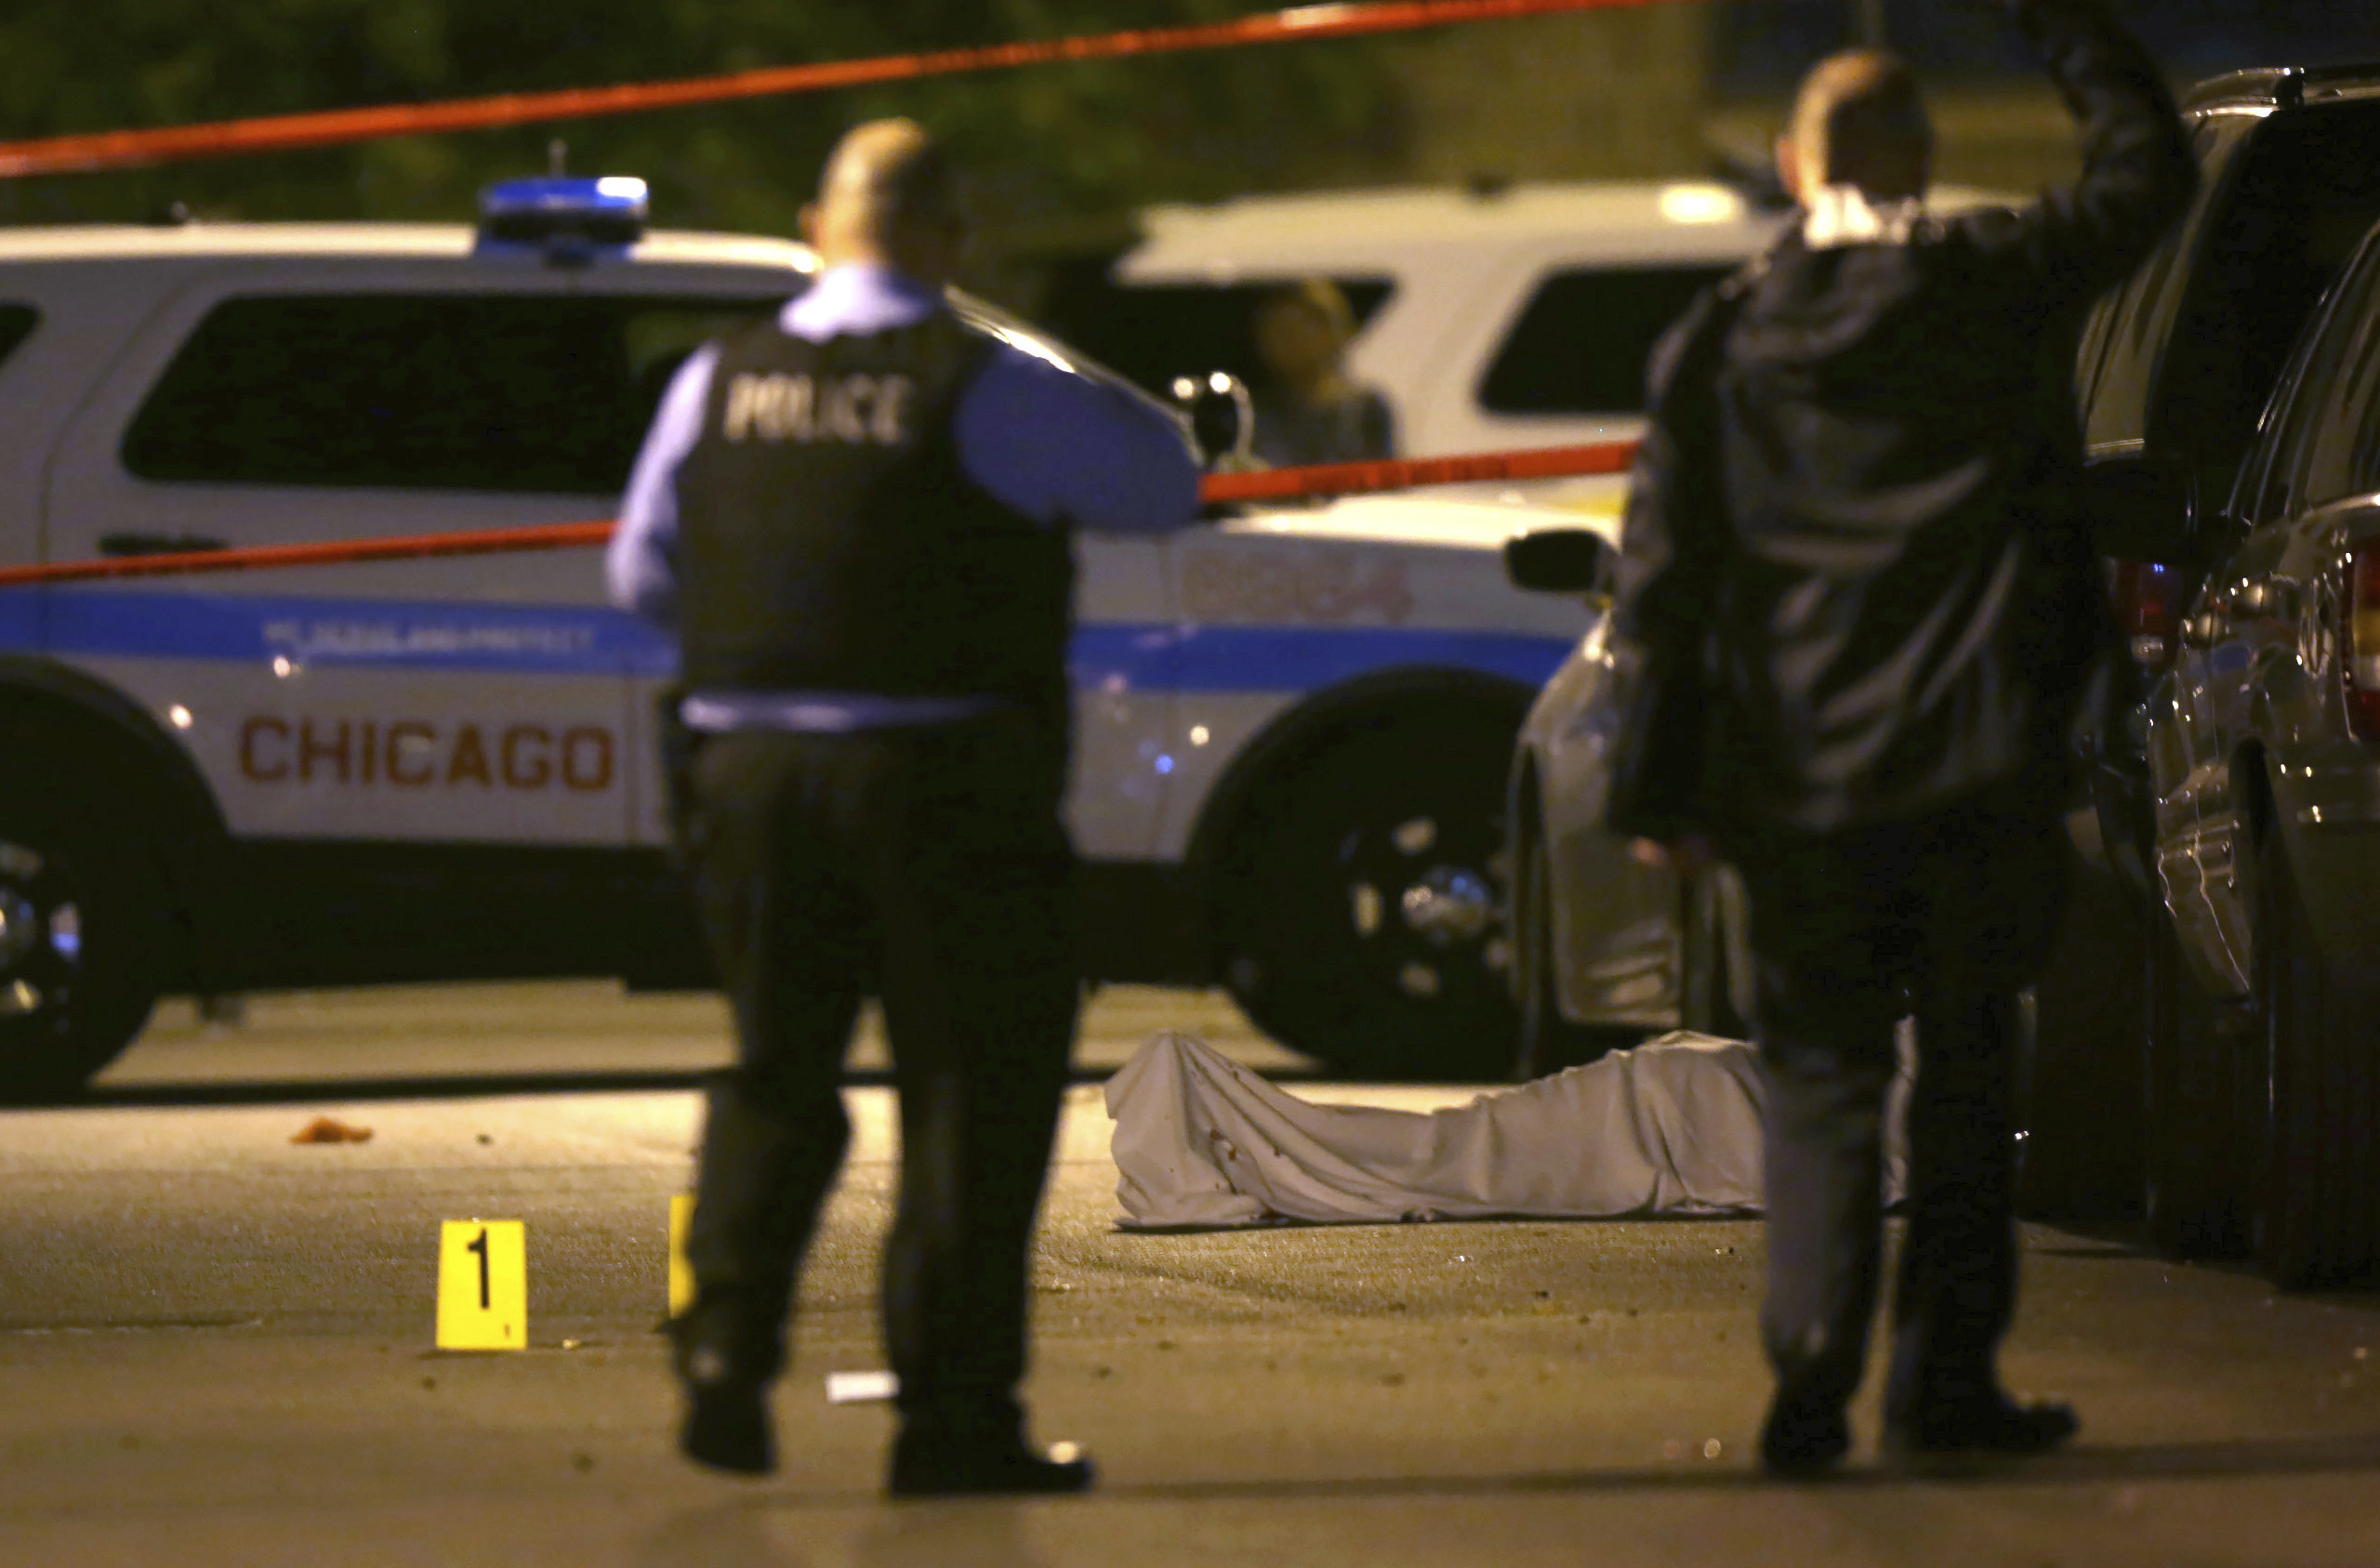 Police work  the scene where a man was fatally shot in the chest in Chicago, in this file photo. (E. Jason Wambsgans/Chicago Tribune via AP)